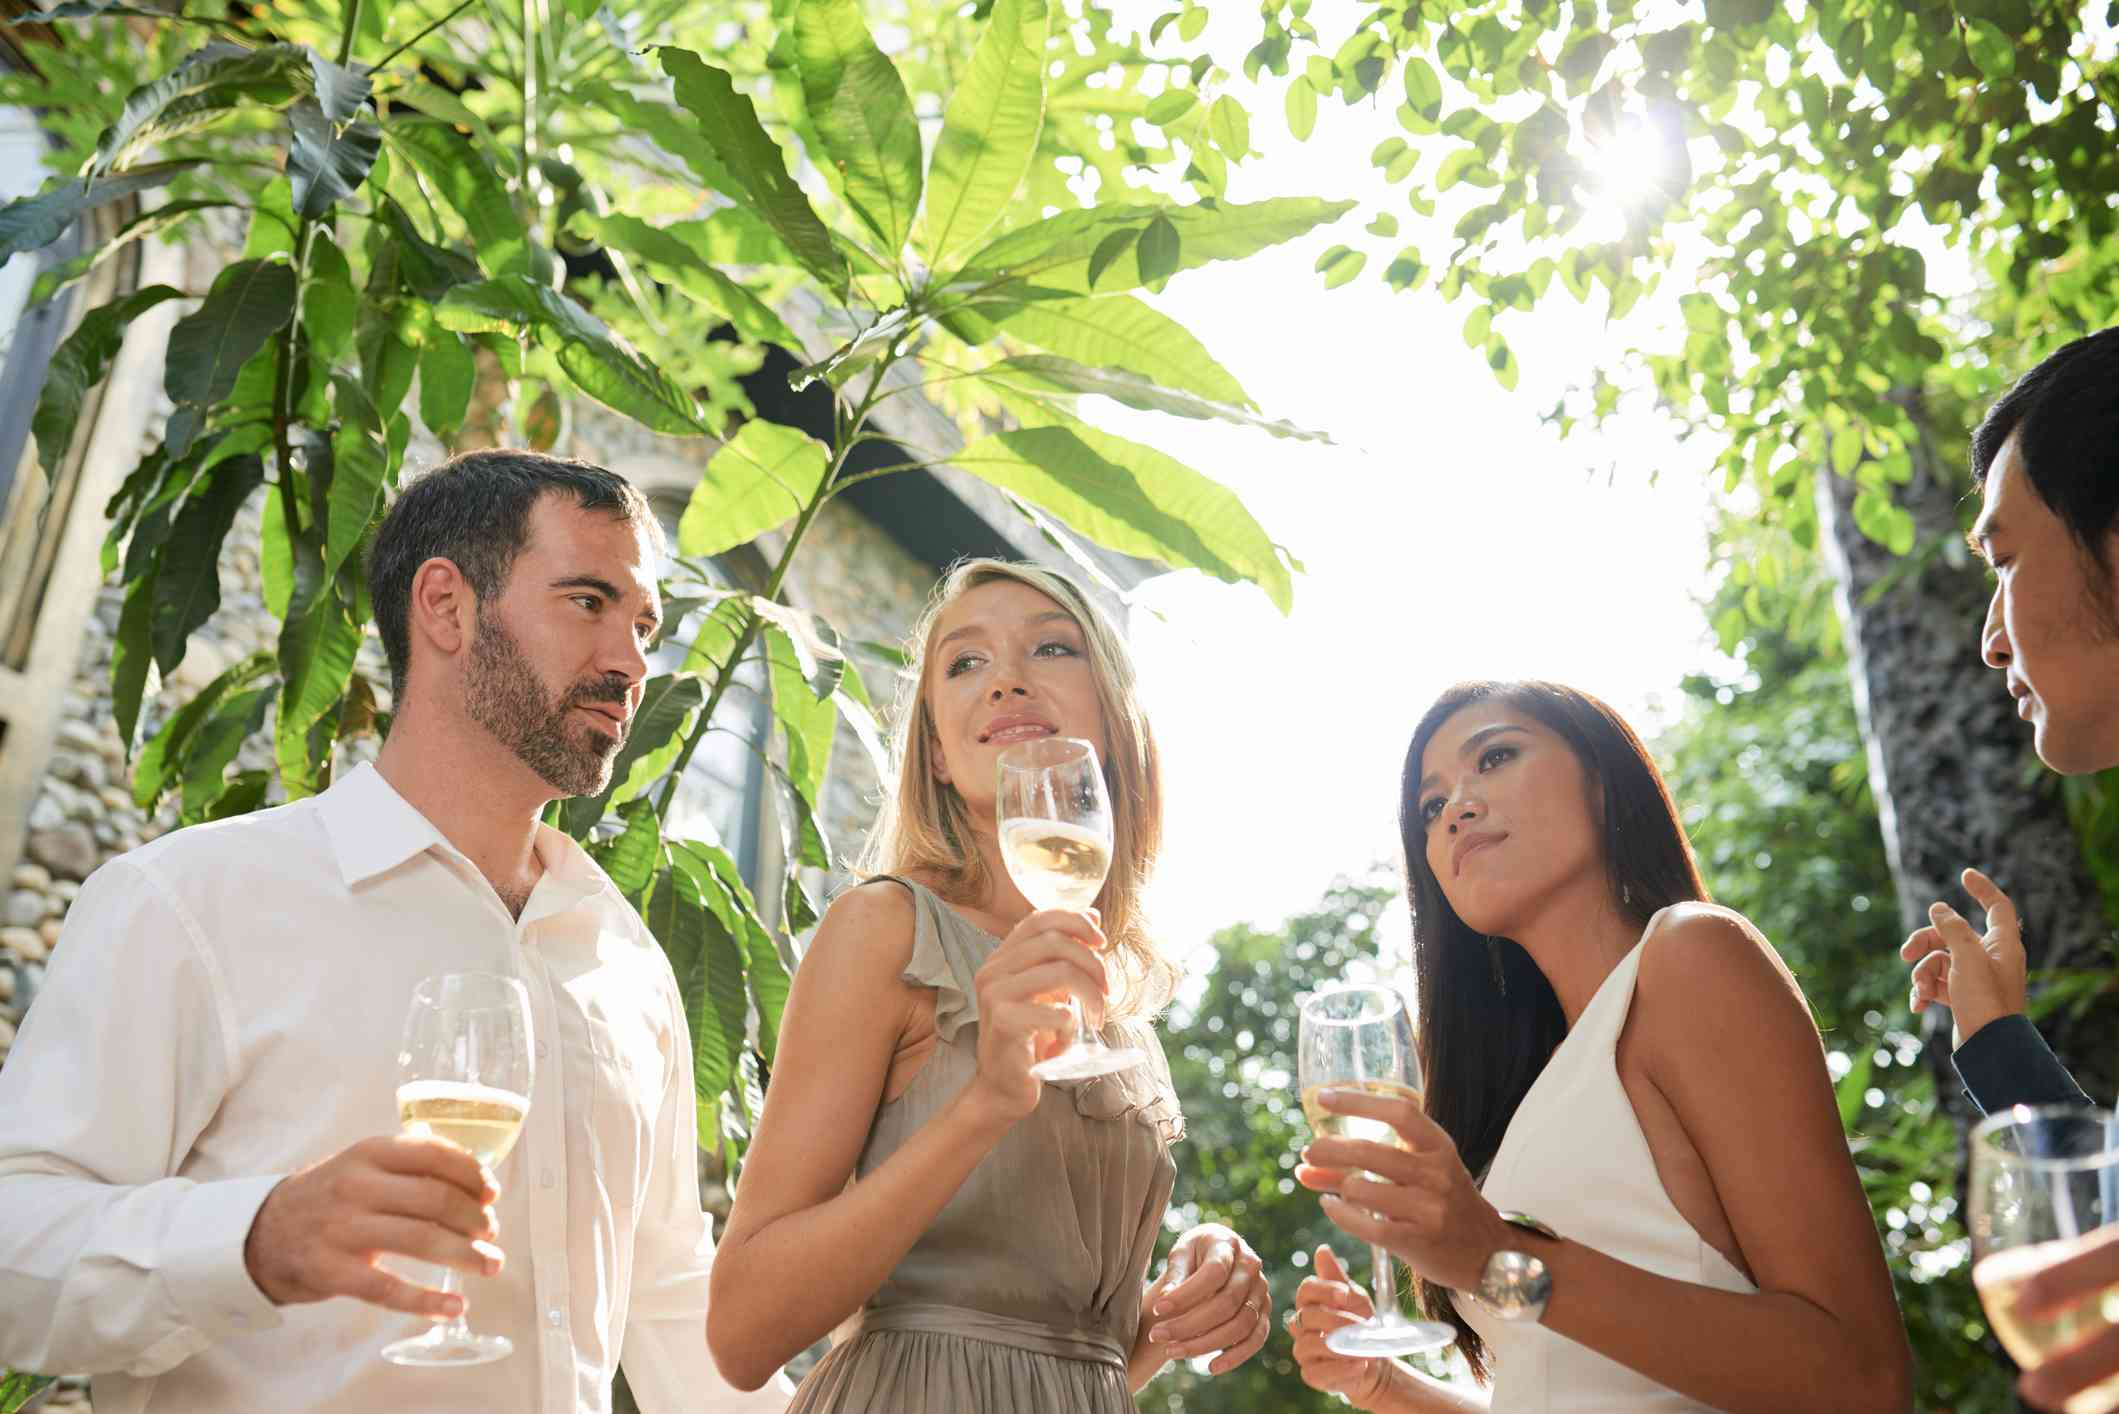 Two women and two men in formal attire drinking champagne outside